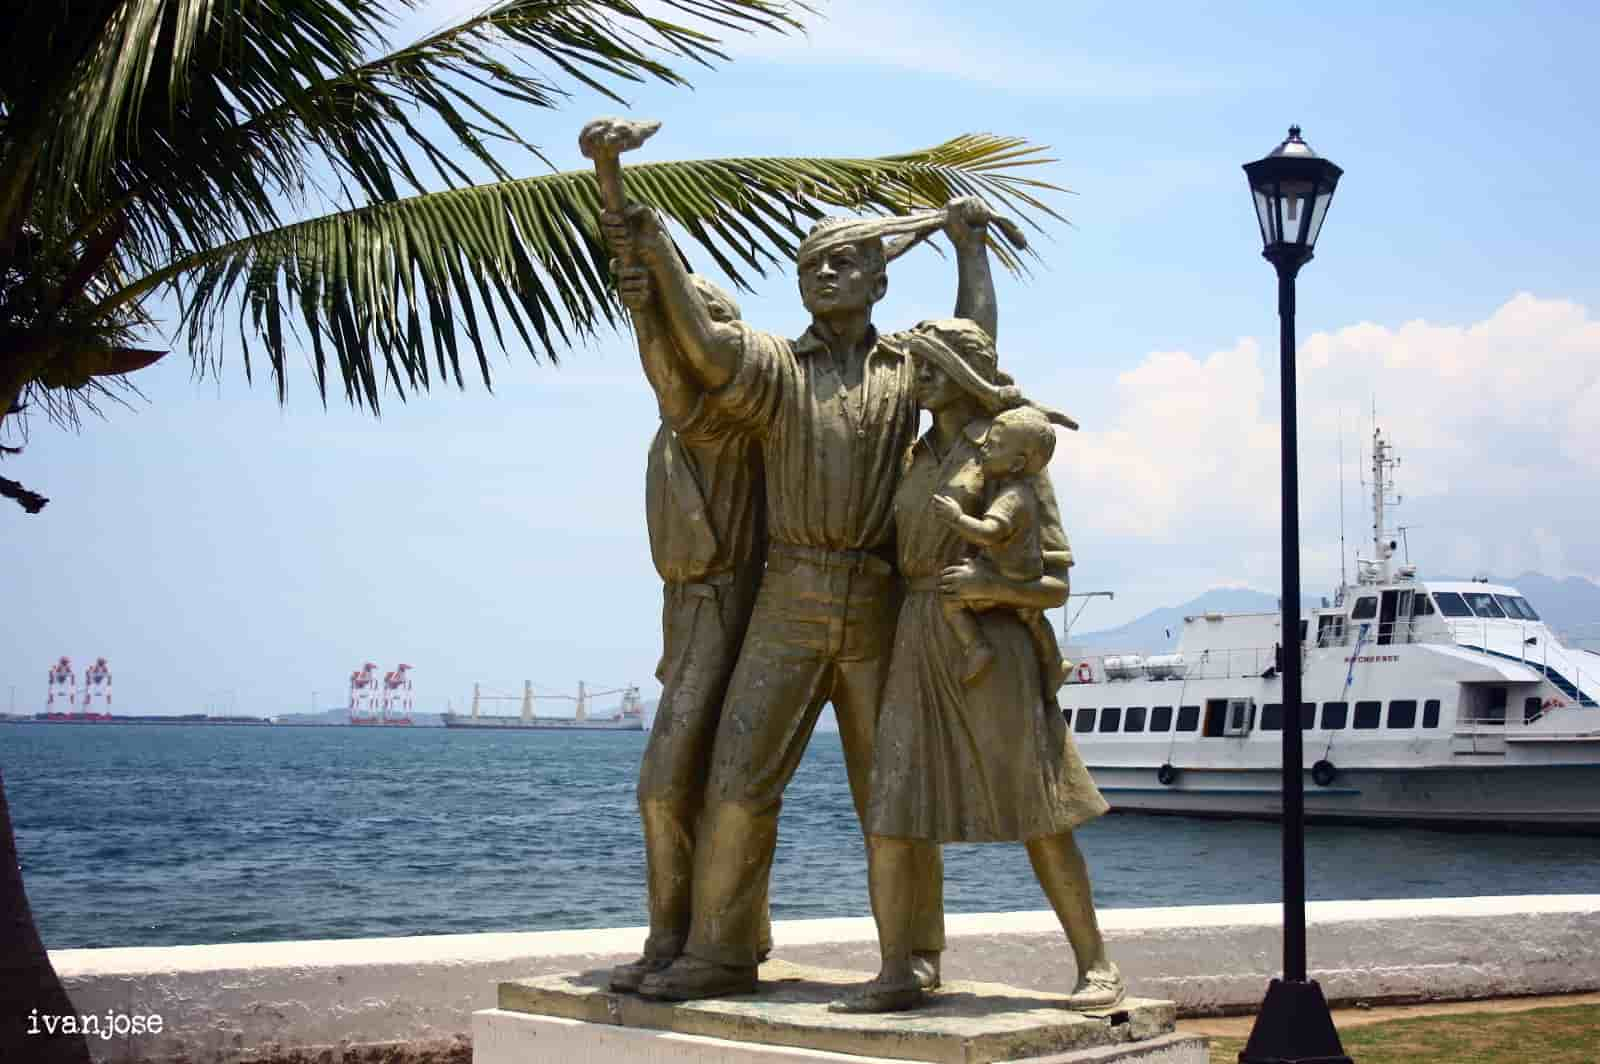 Statues at the port where we waited for the ferry ride going to Grande Island Resort